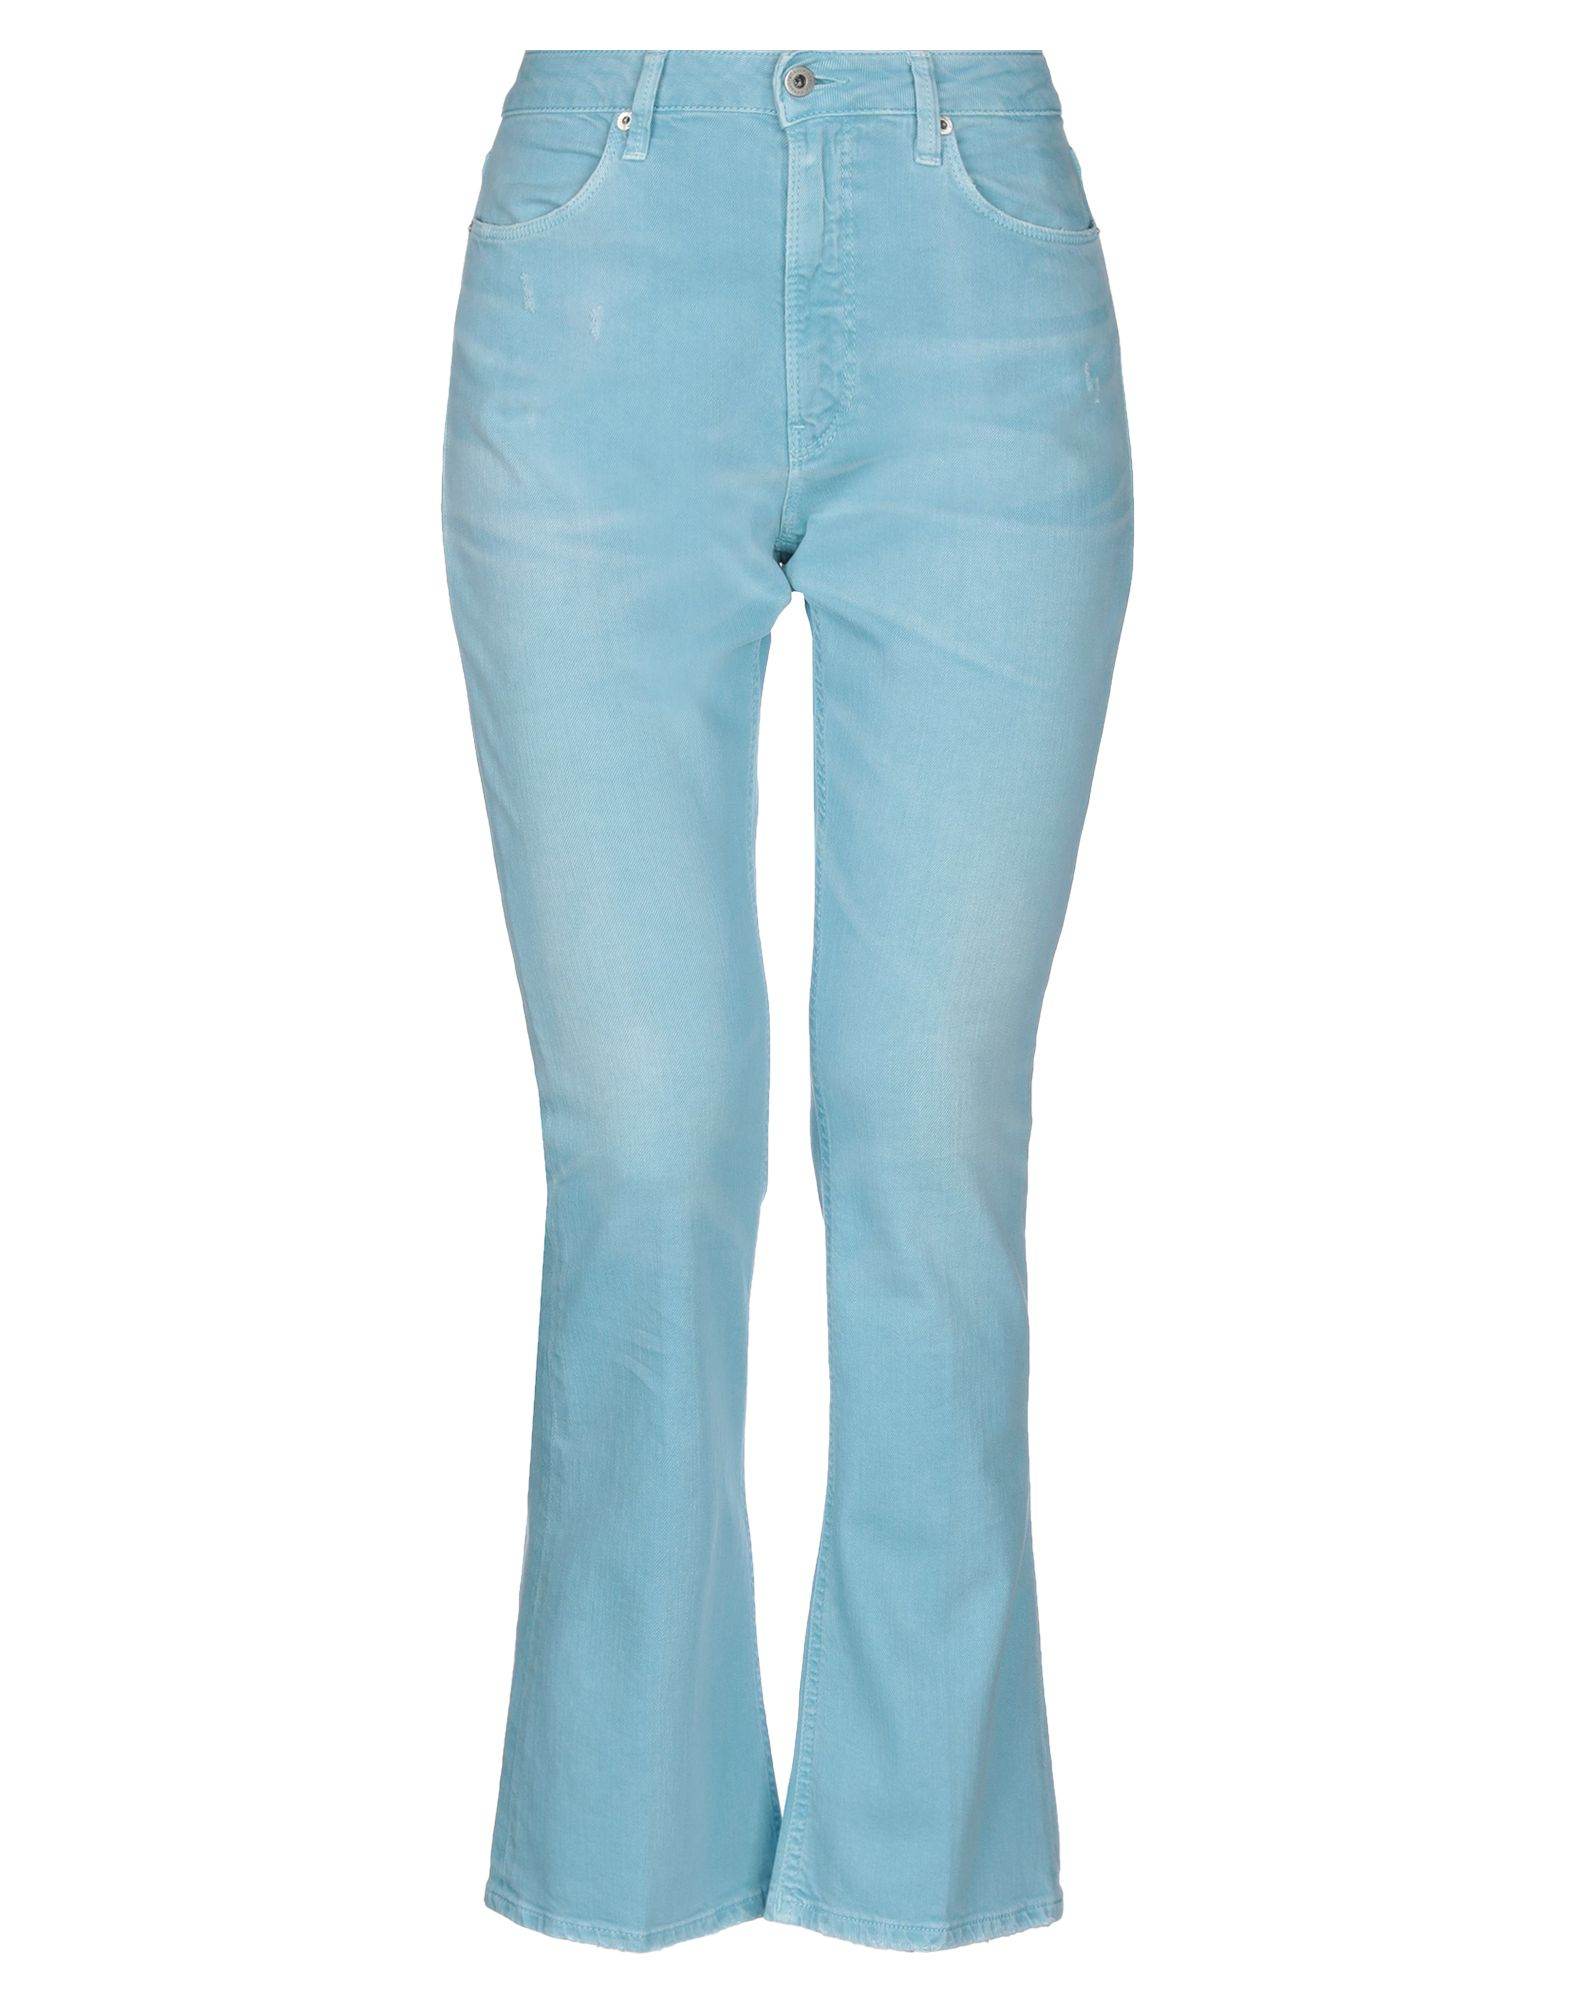 DONDUP Jeans. denim, worn effect, logo, solid color, colored wash, mid rise, front closure, button, zip, multipockets, stretch, model: mandy. 98% Cotton, 2% Elastane